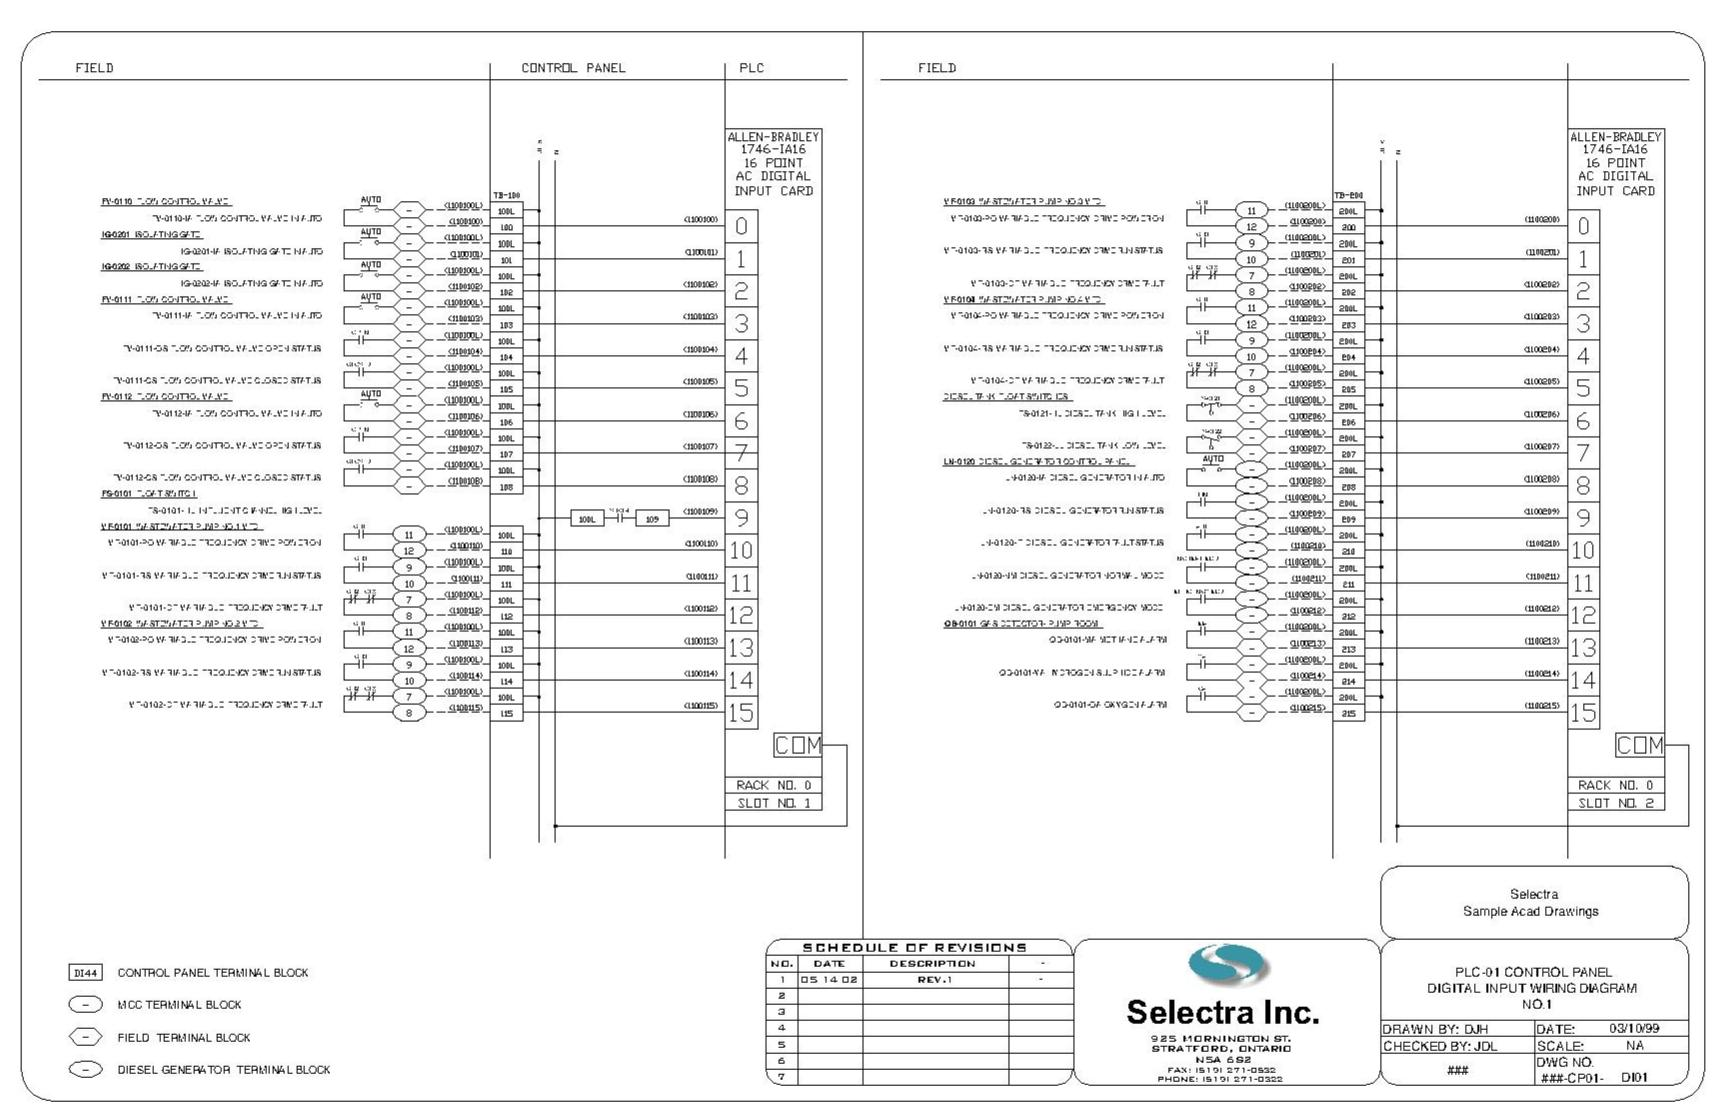 ab di01 Model 1 phase starter panel 1746 ob16 wiring diagram at suagrazia.org